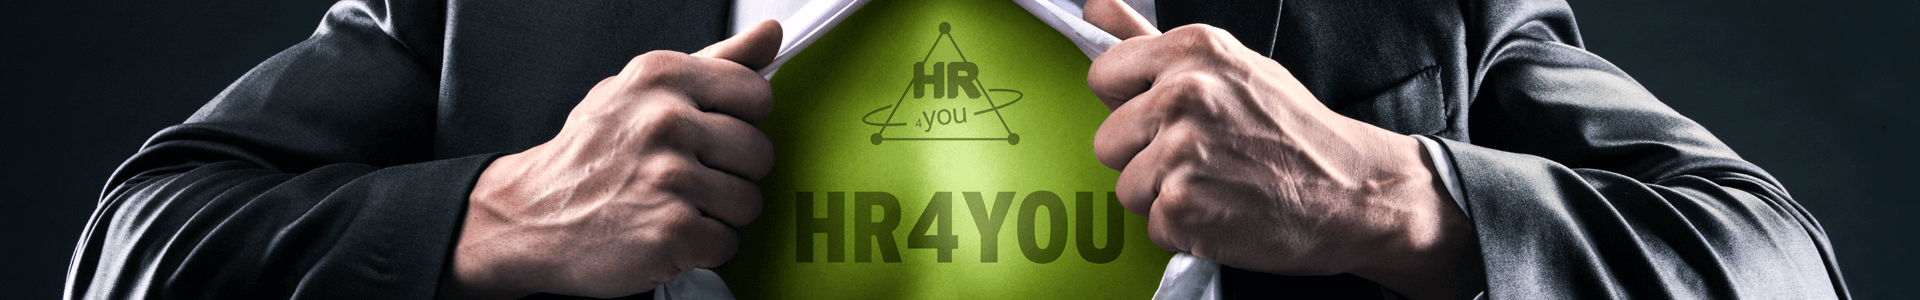 hr4you-bewerbermanagement software